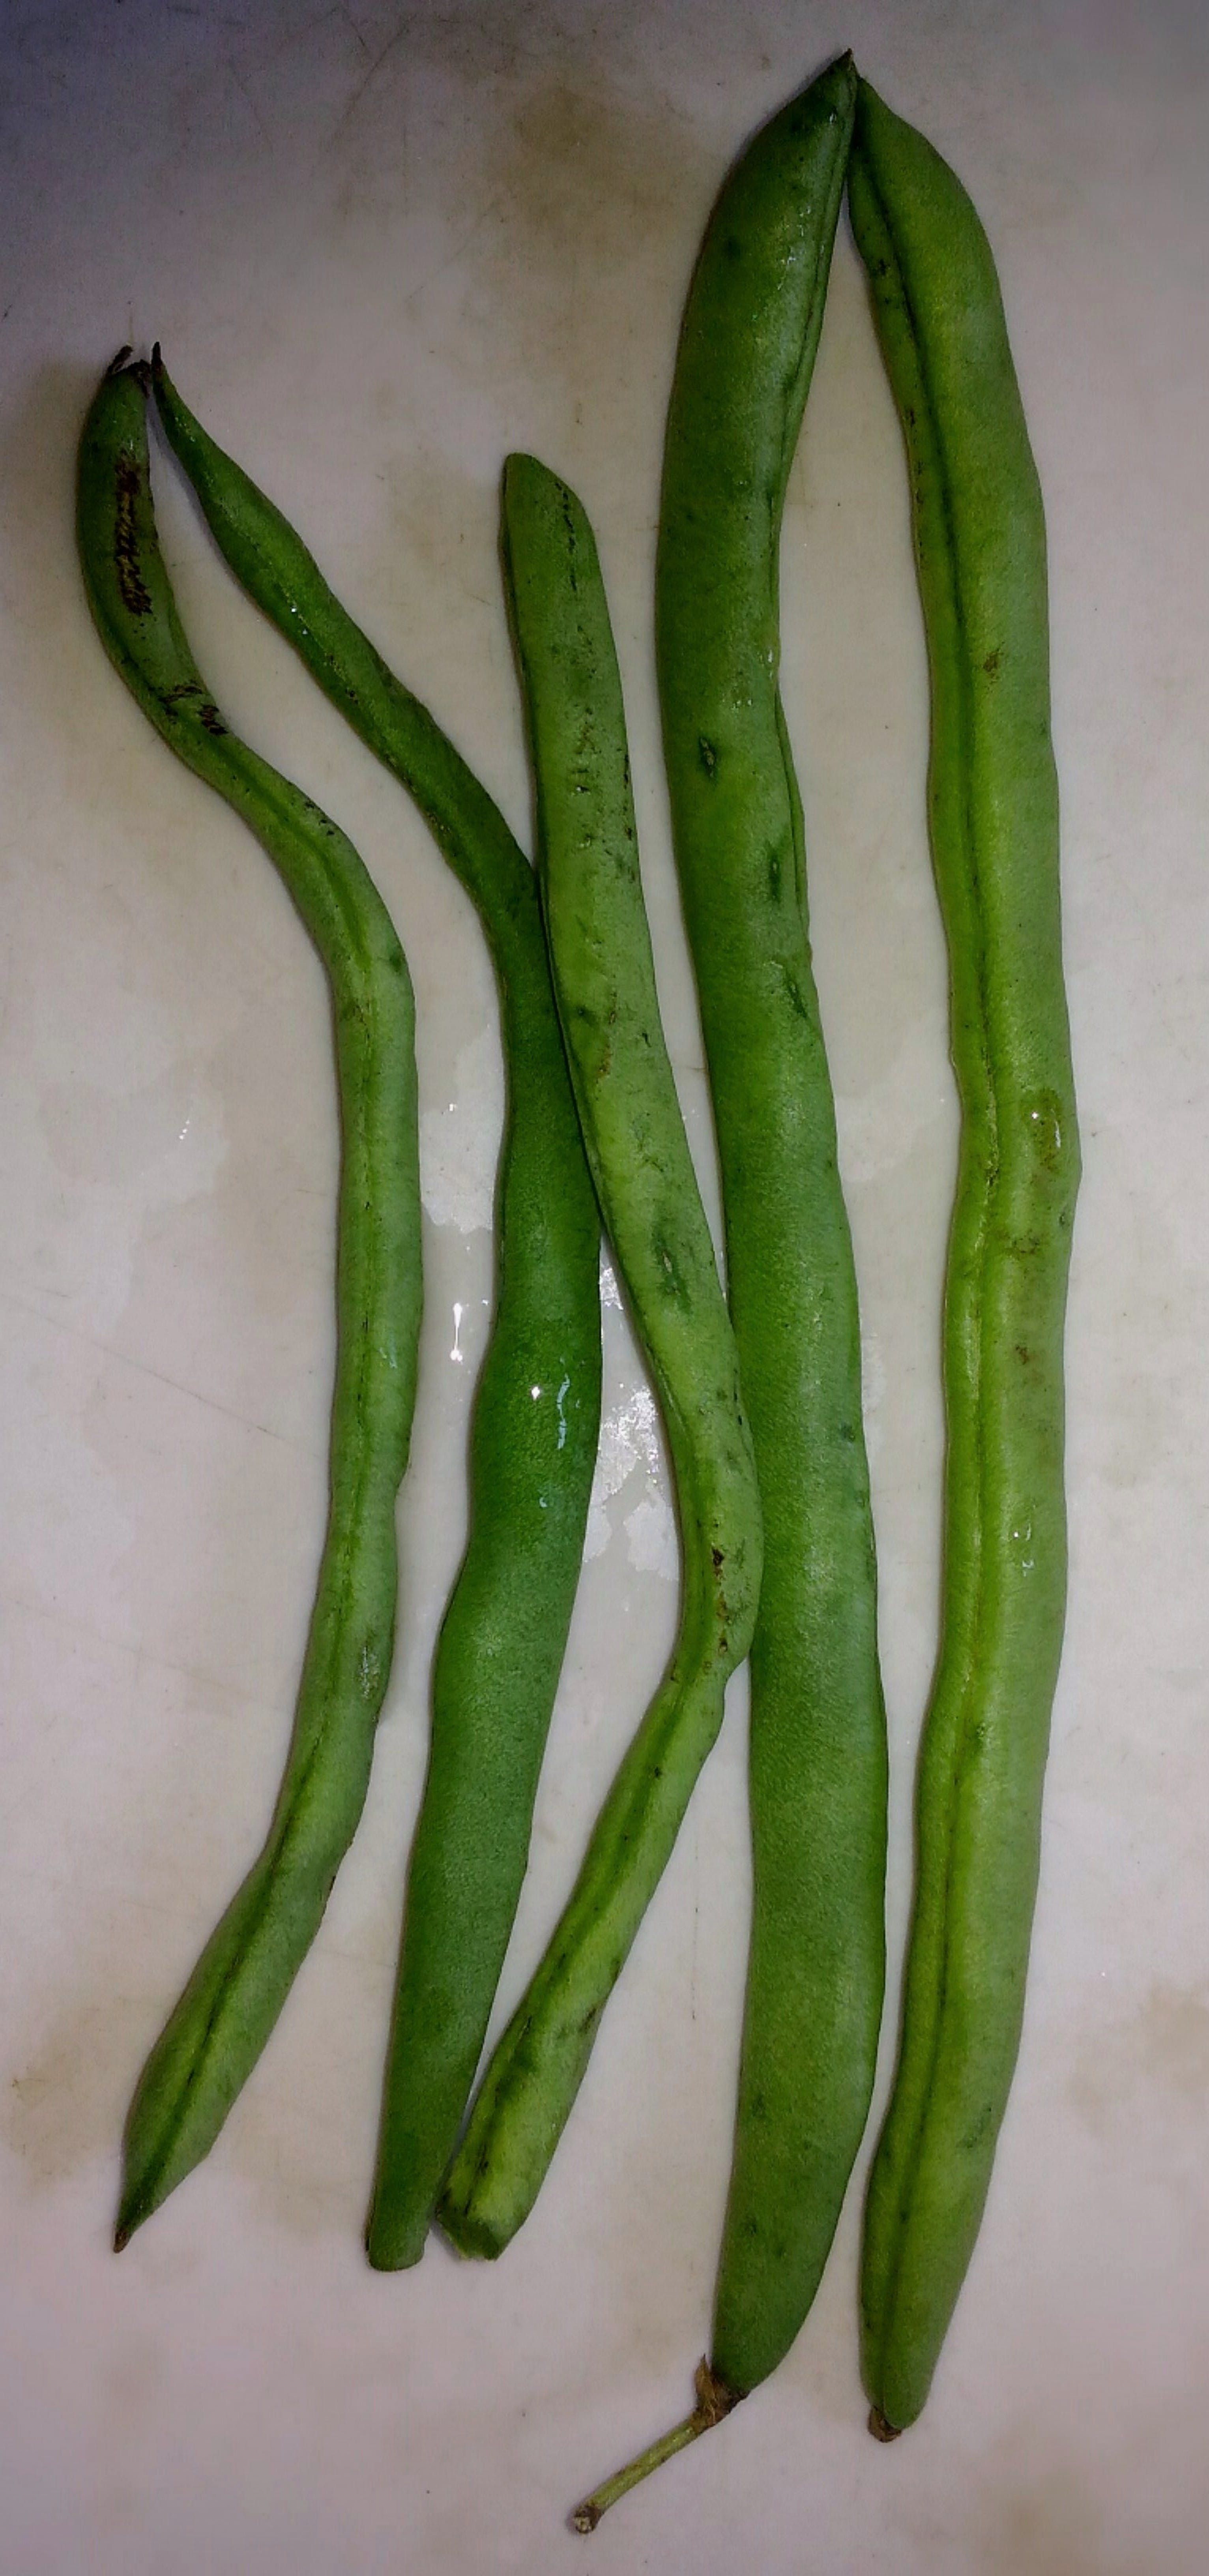 Free stock photo of Long Beans